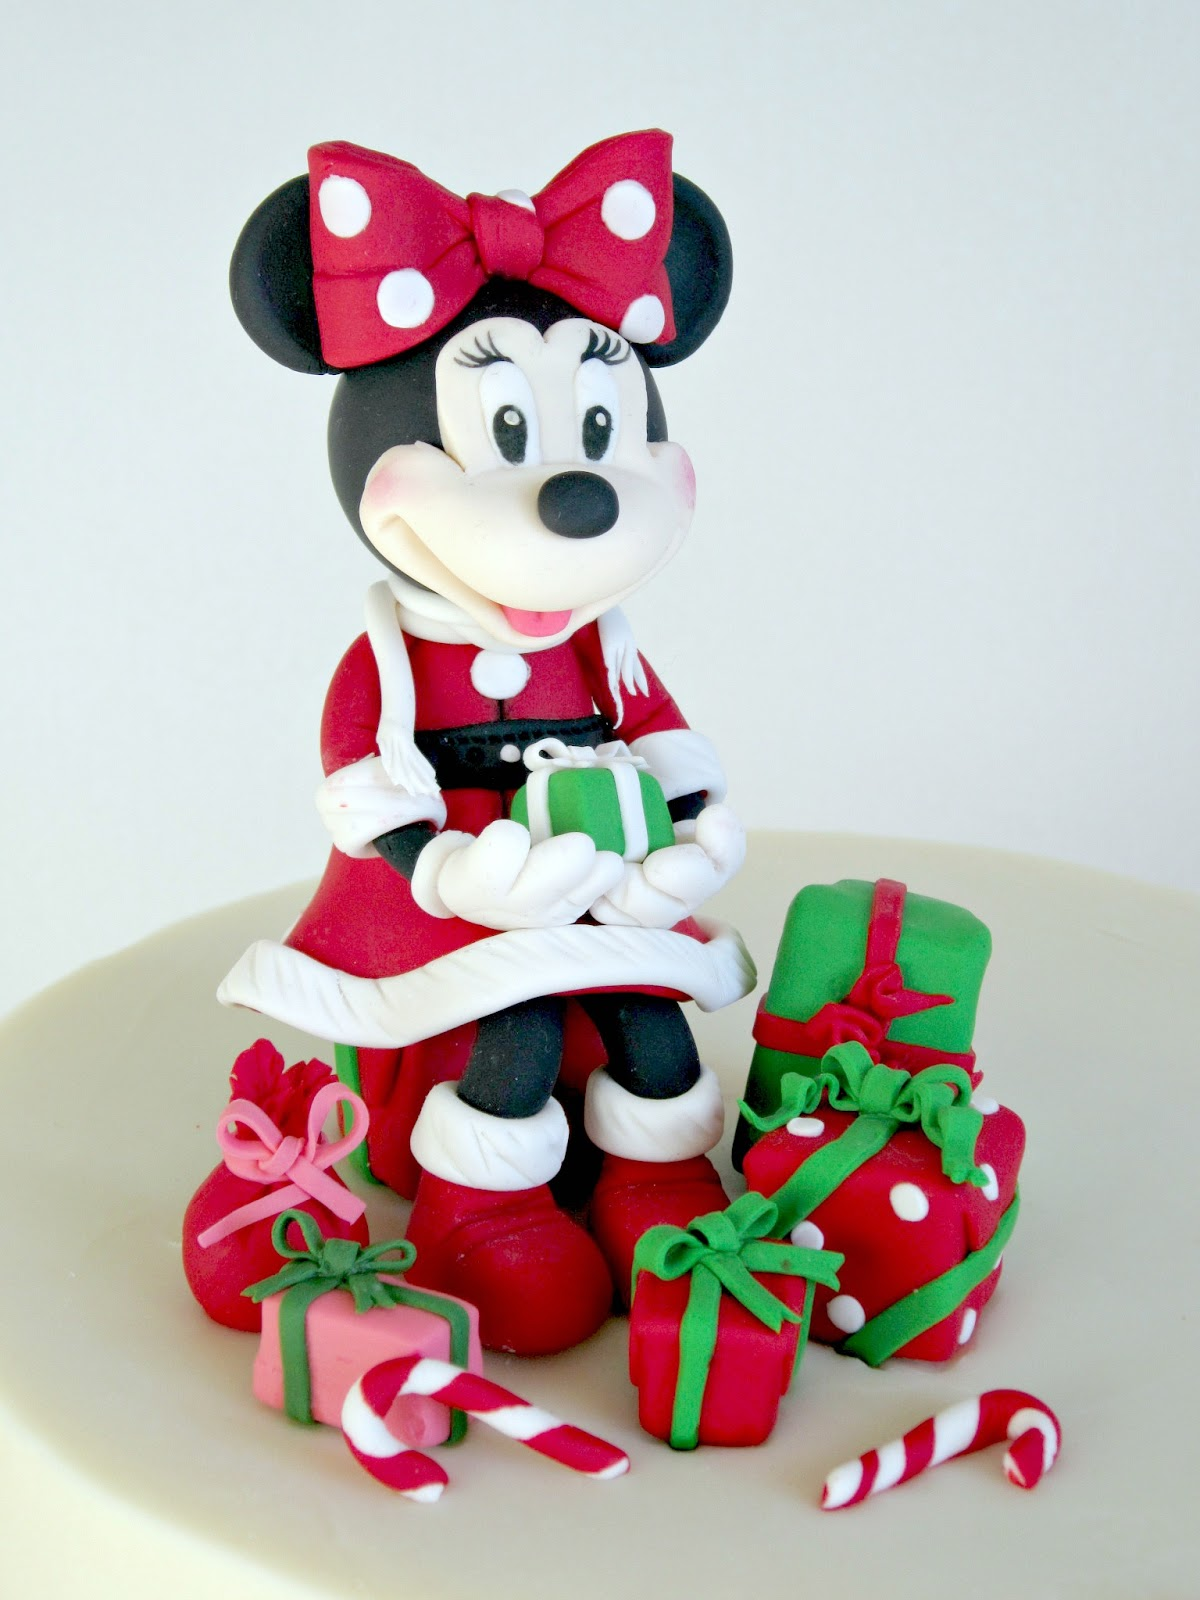 Delectable cakes adorable minnie mouse 39 christmas - Minnie mouse noel ...